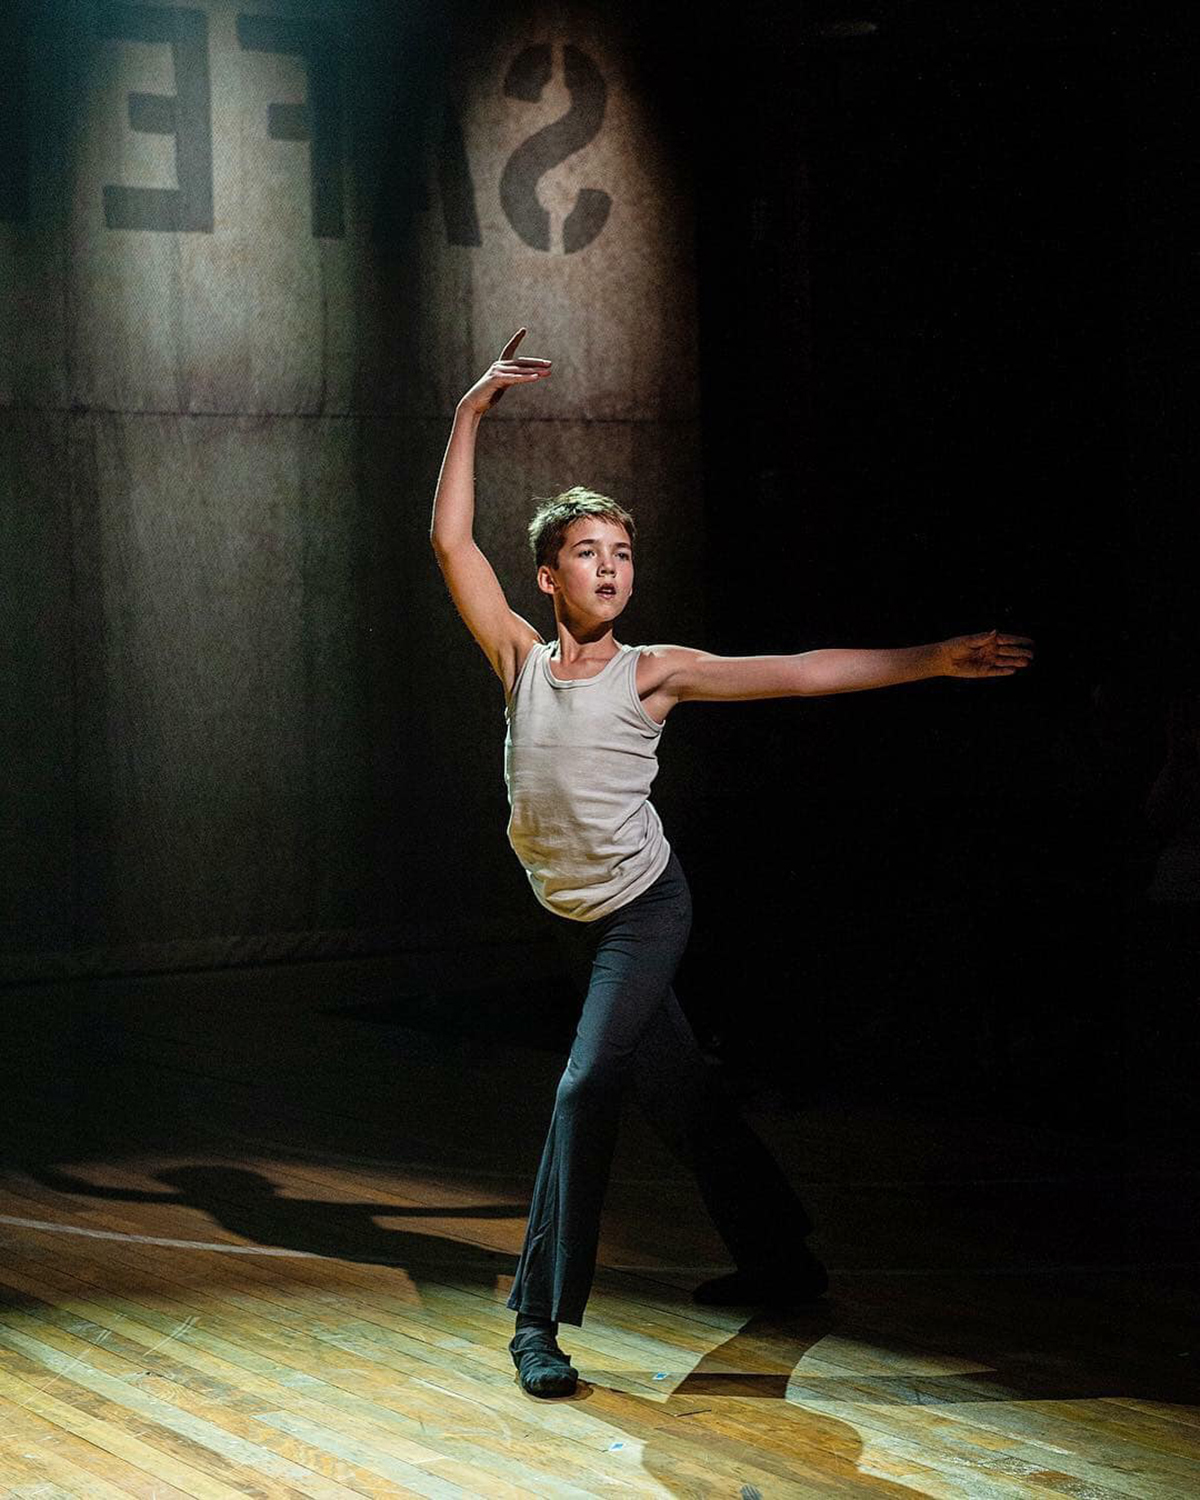 BWW Interview: Liam Redford of BILLY ELLIOT at City Springs Theatre